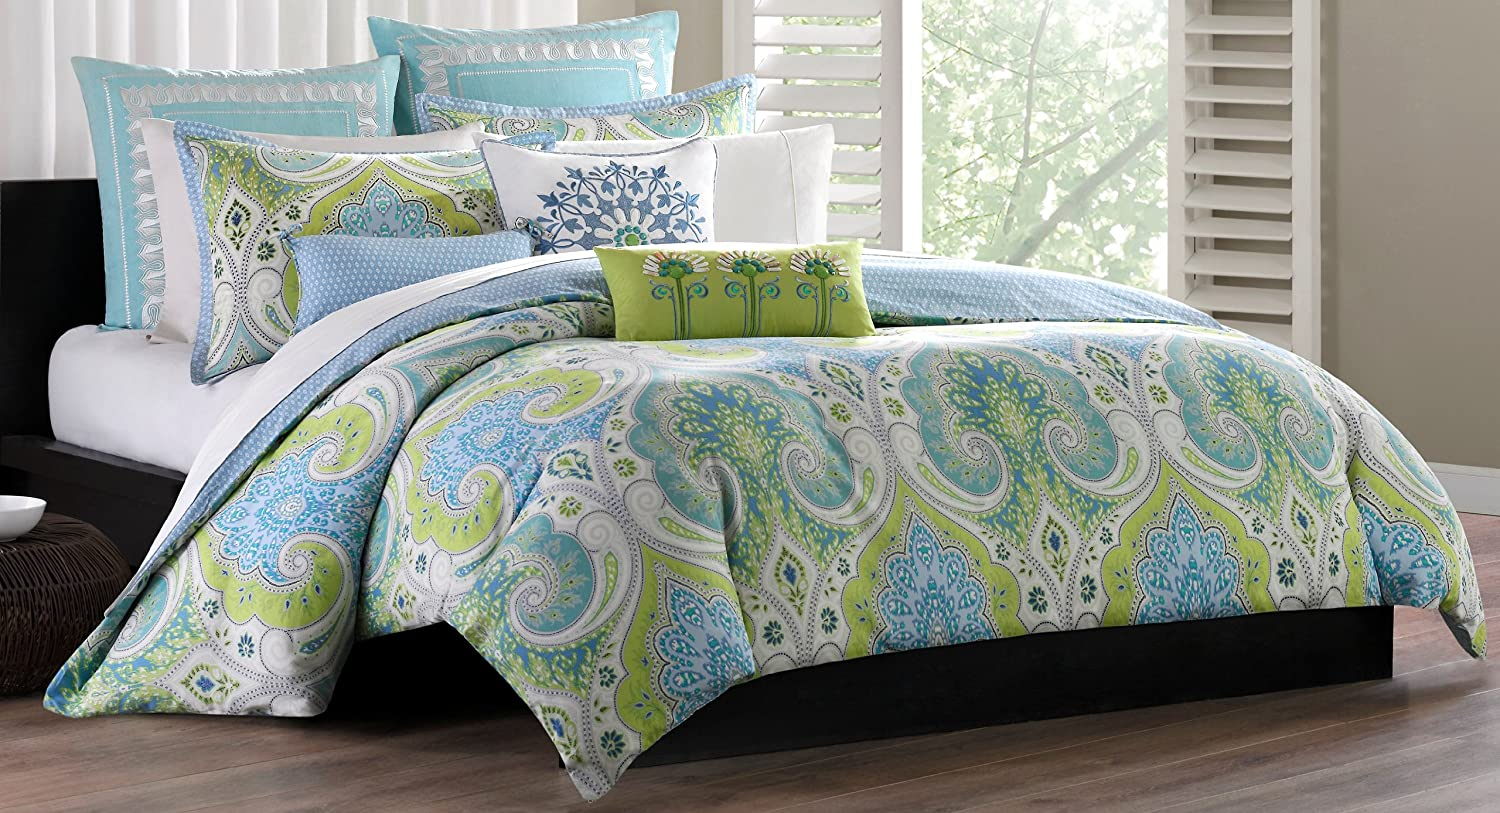 Green Bedding Sets Archives Bedroom Decor Ideas